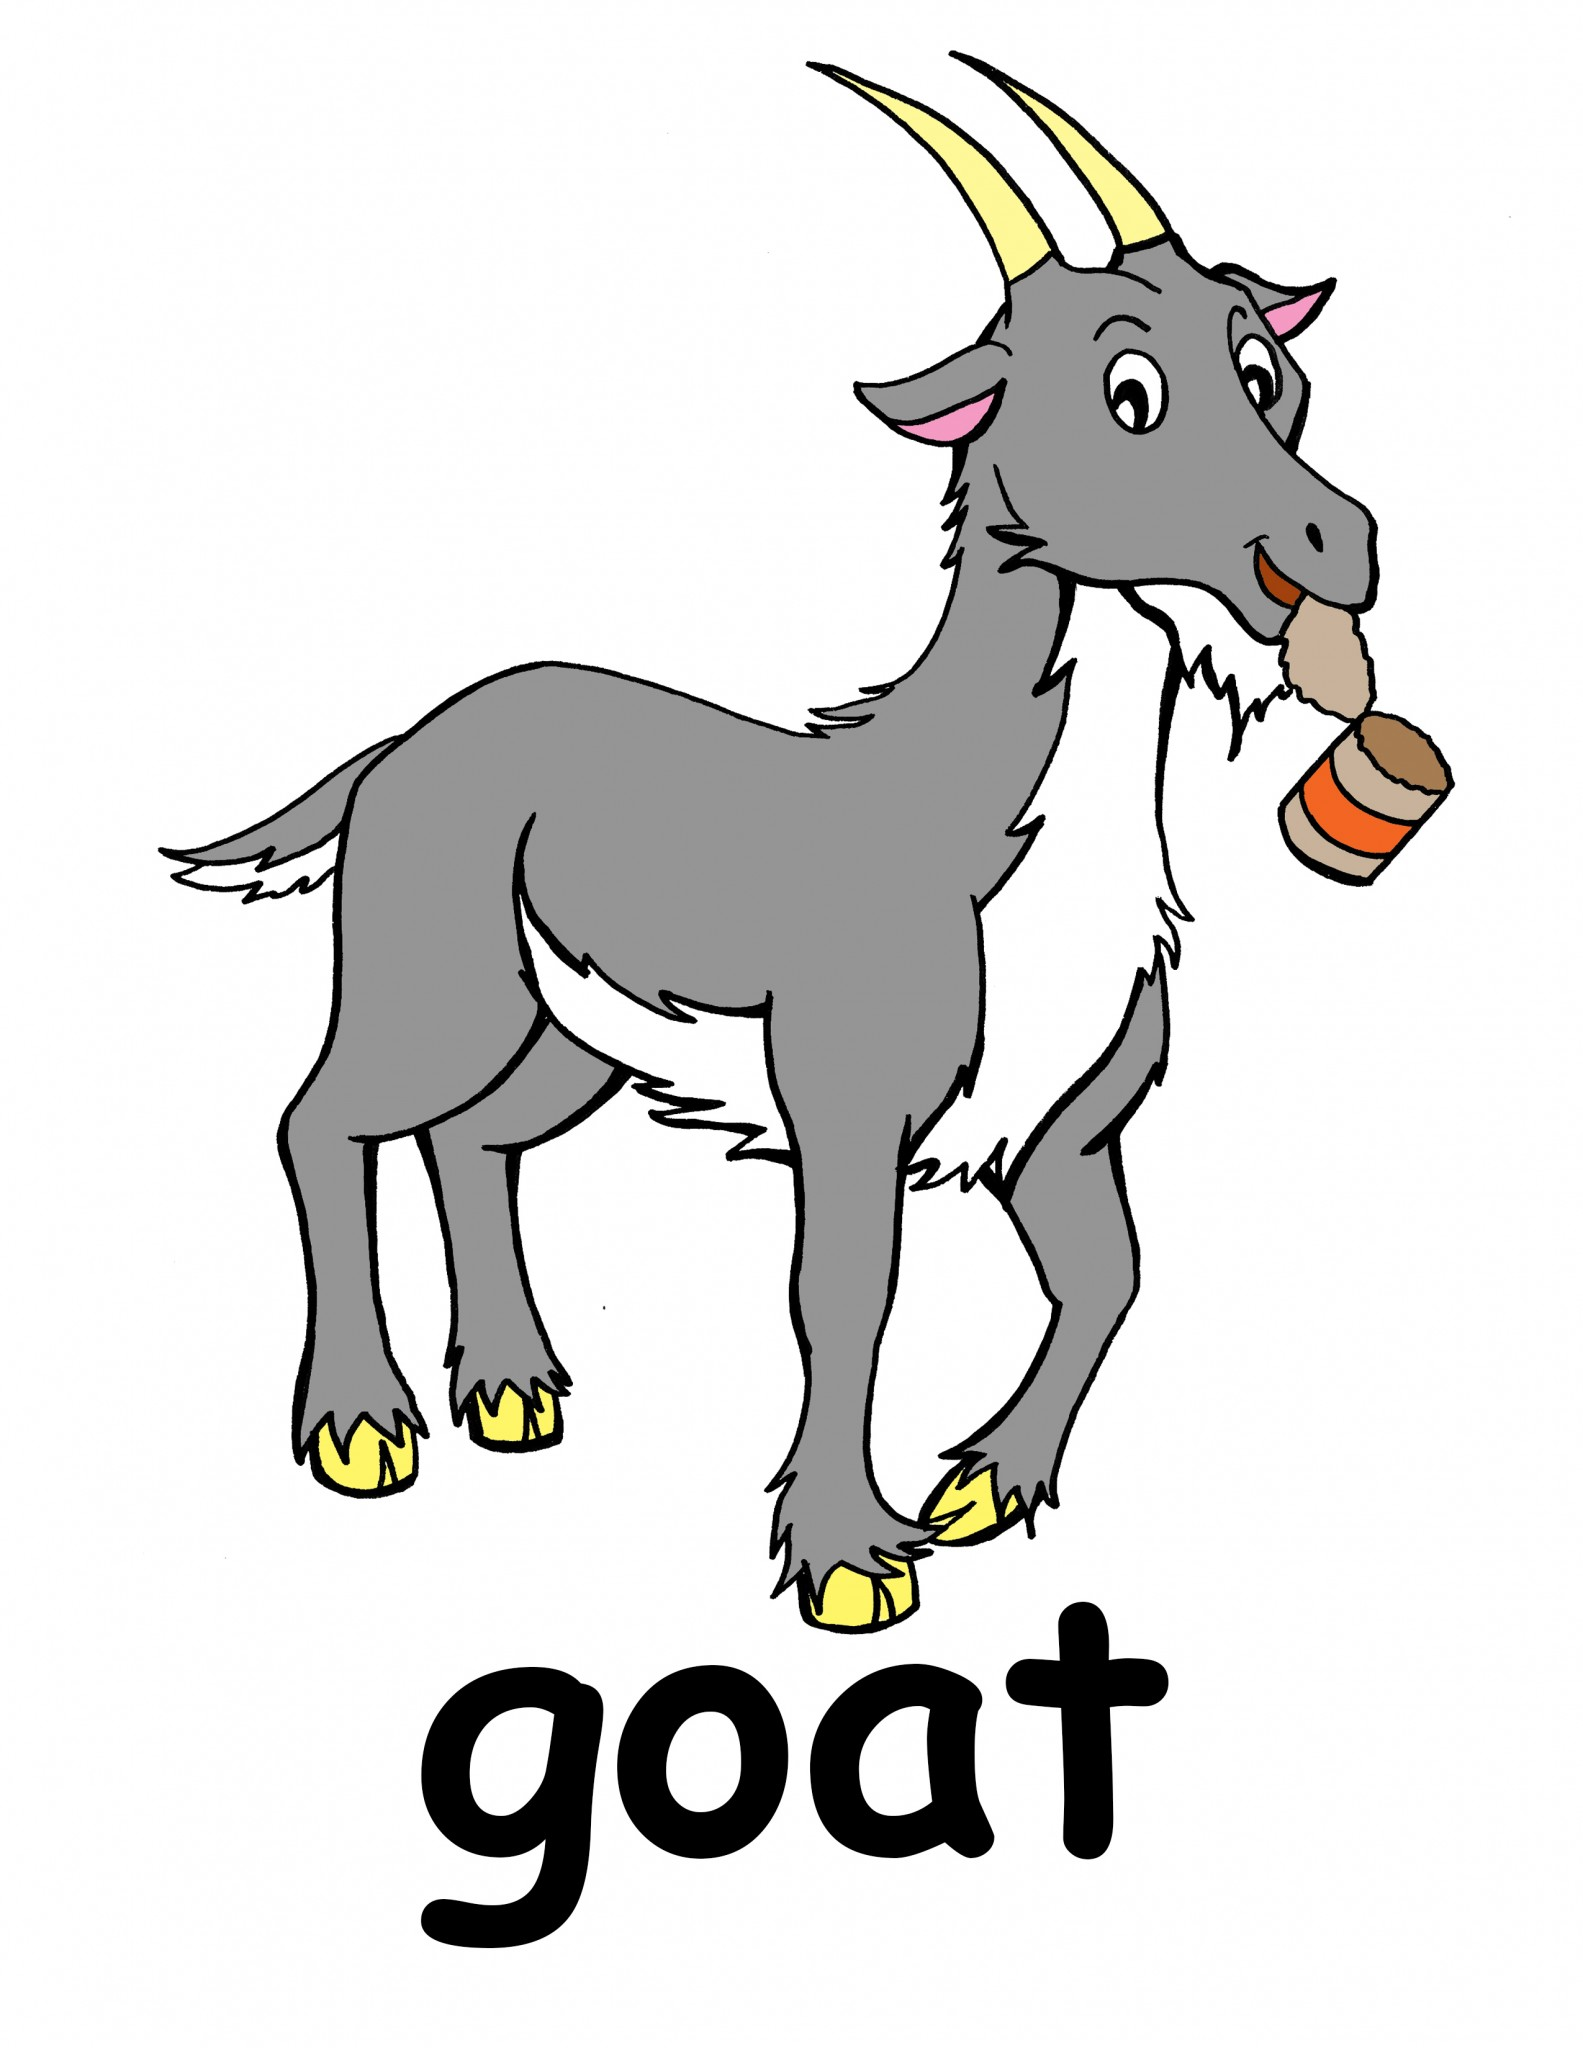 Clip art goat clipart collection.